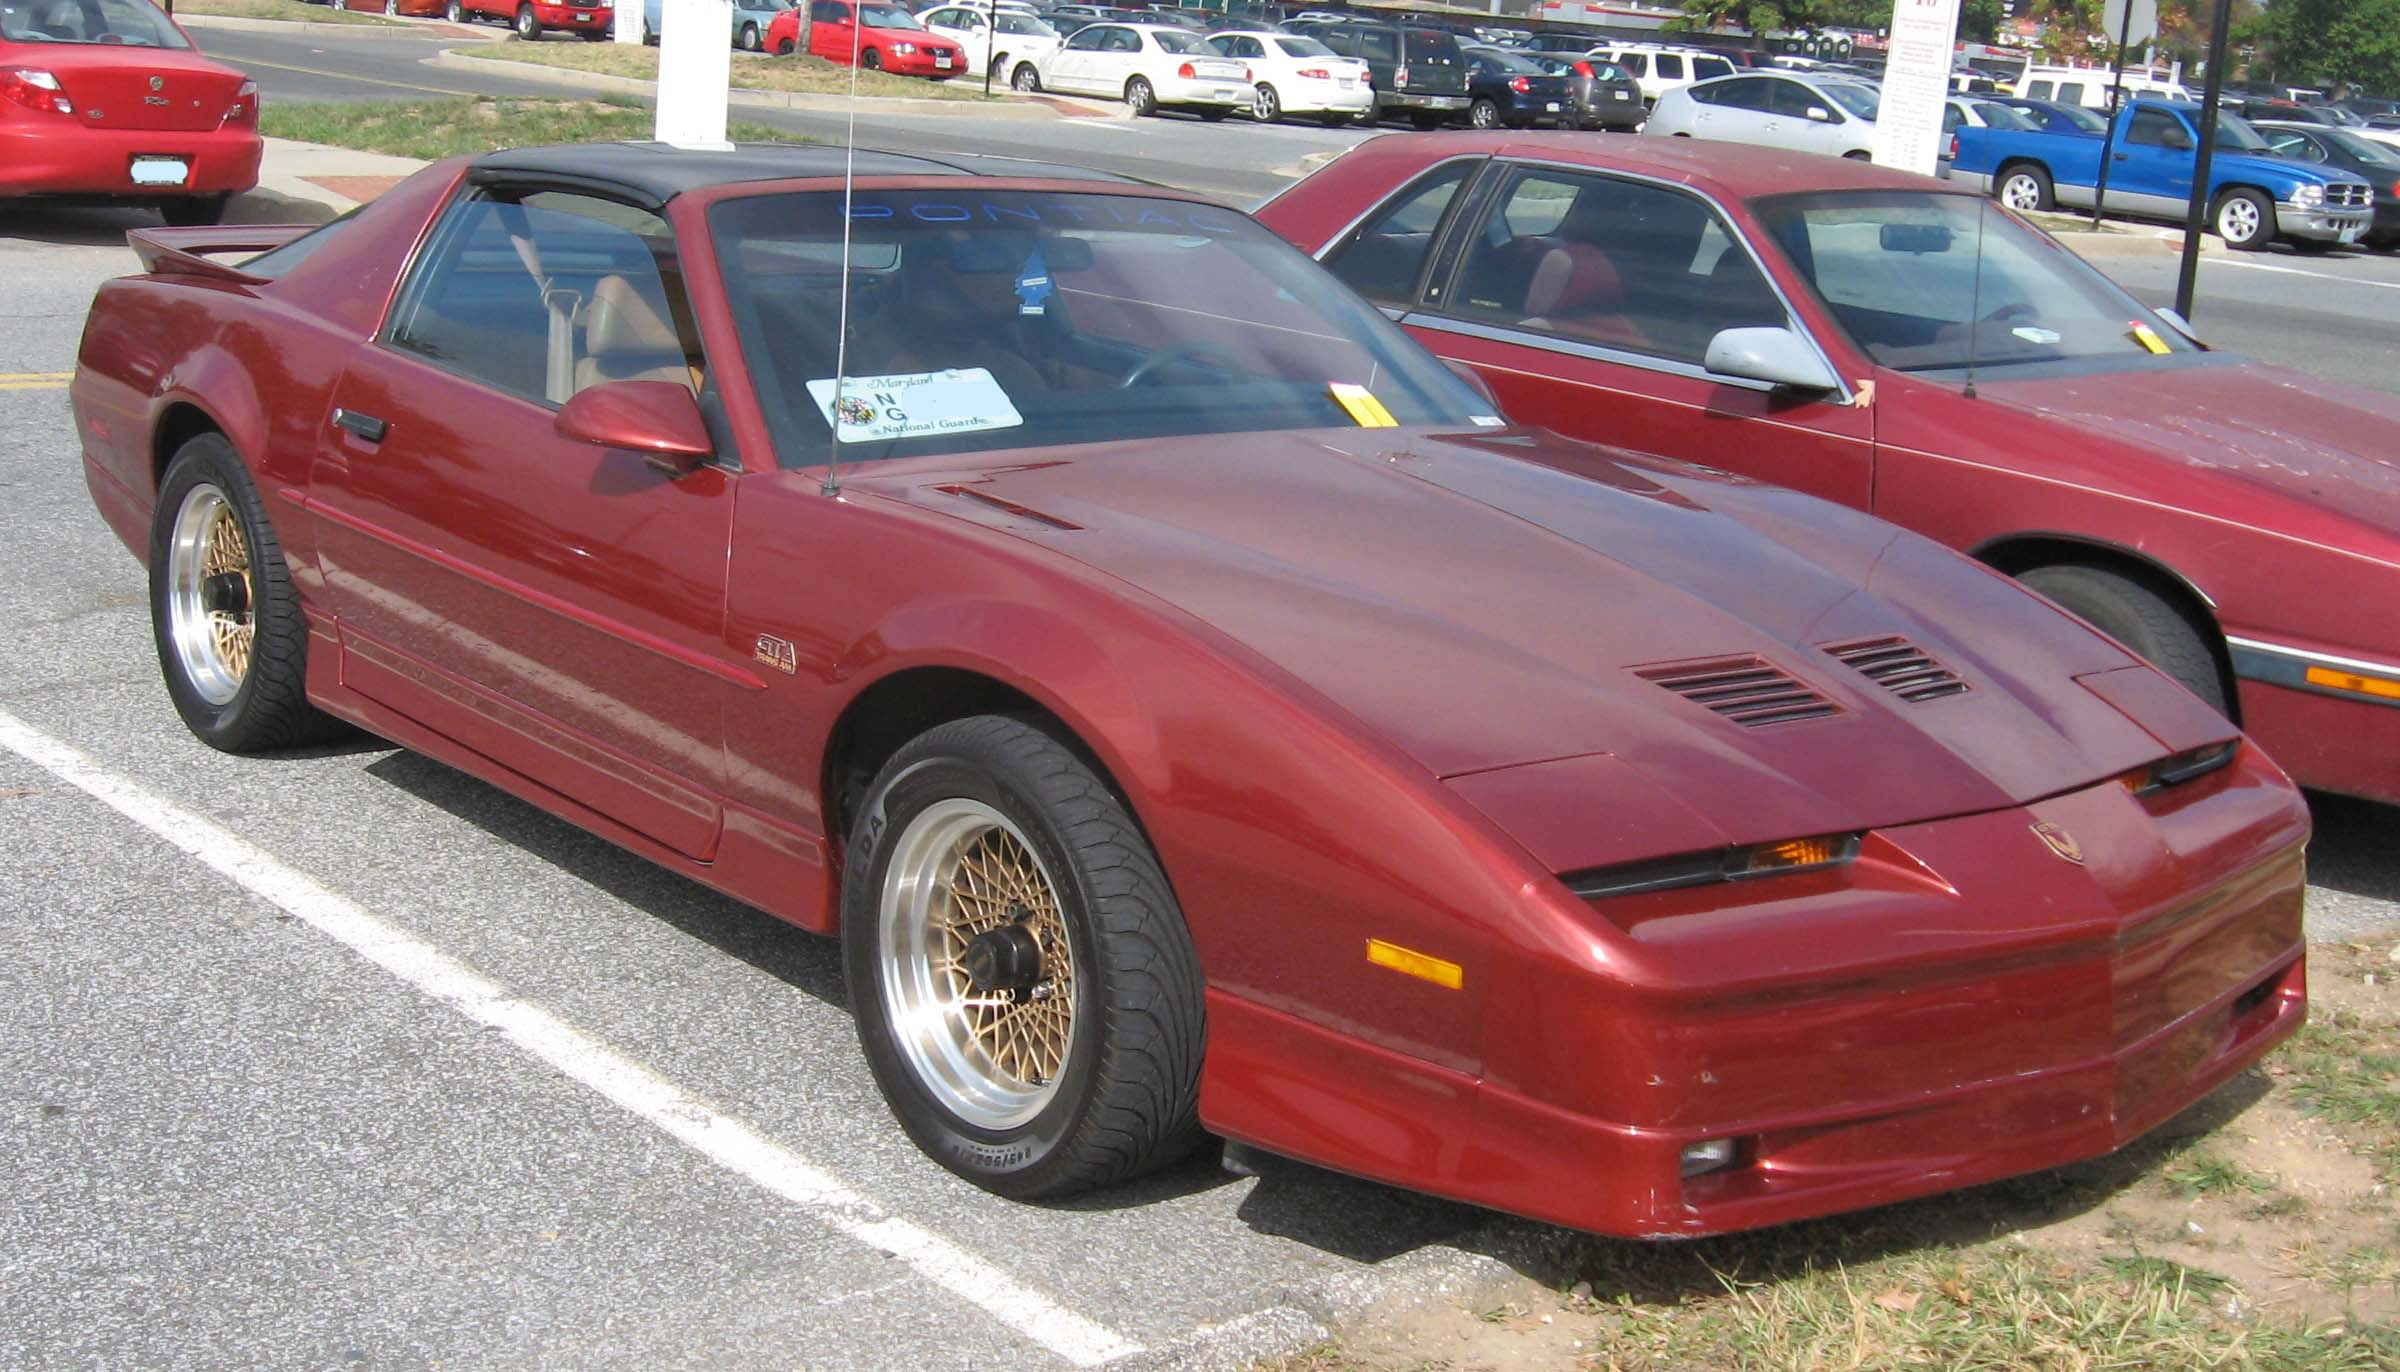 File:Pontiac-Firebird-Trans-Am-GTA.jpg